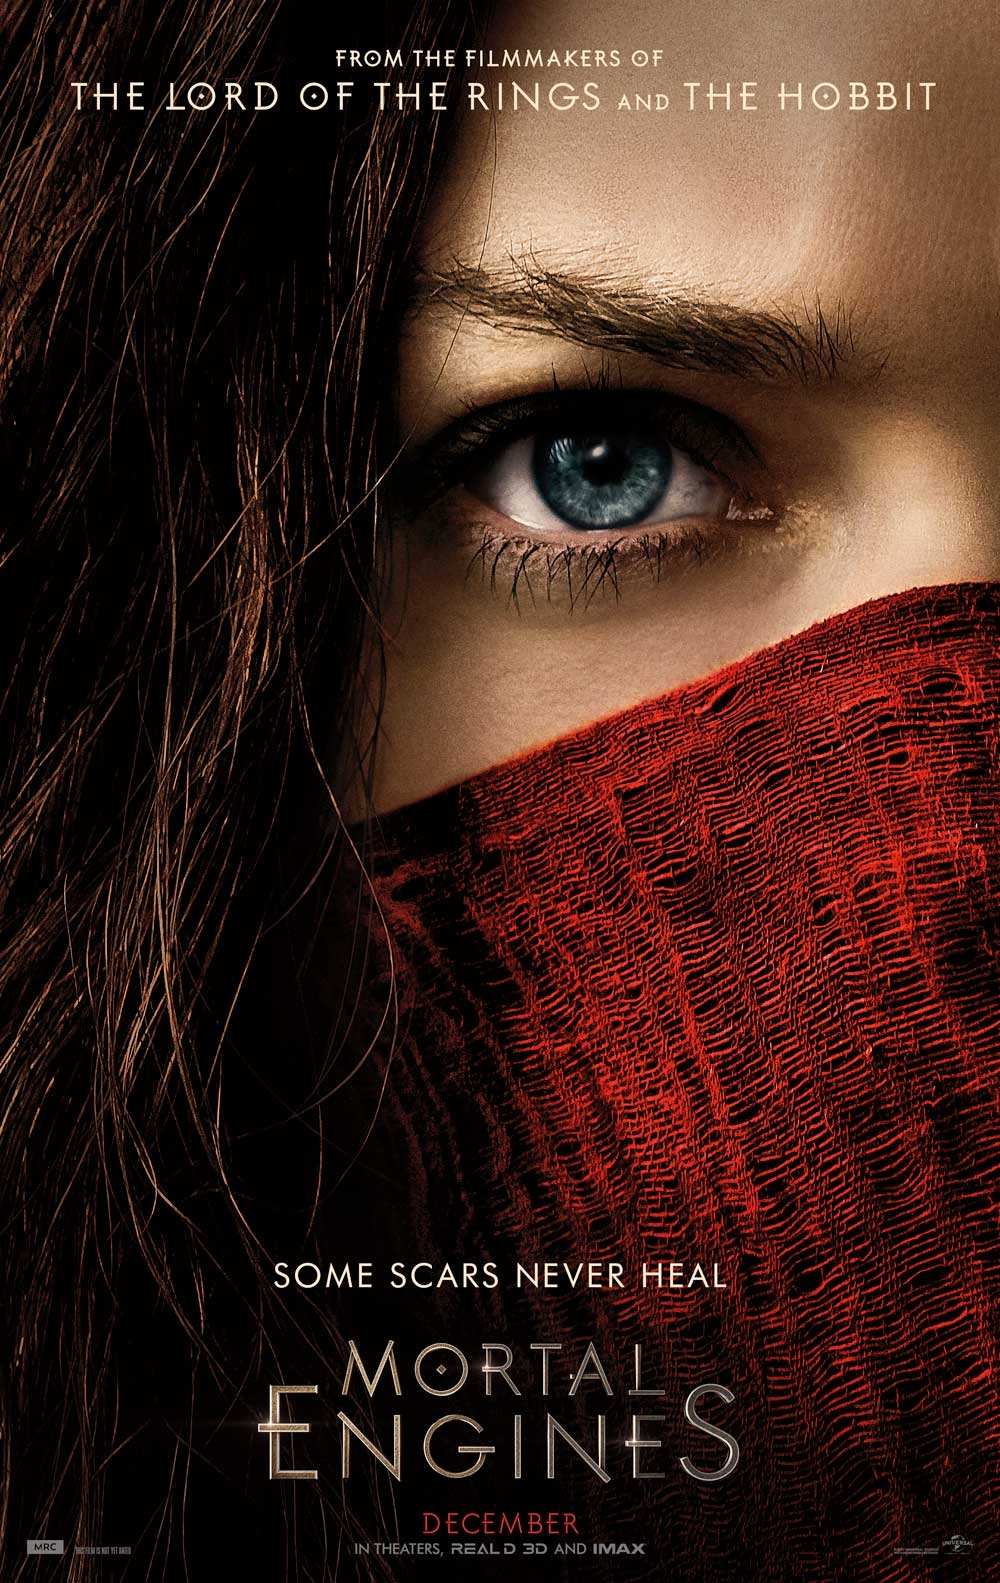 Mortal Engines offical poster